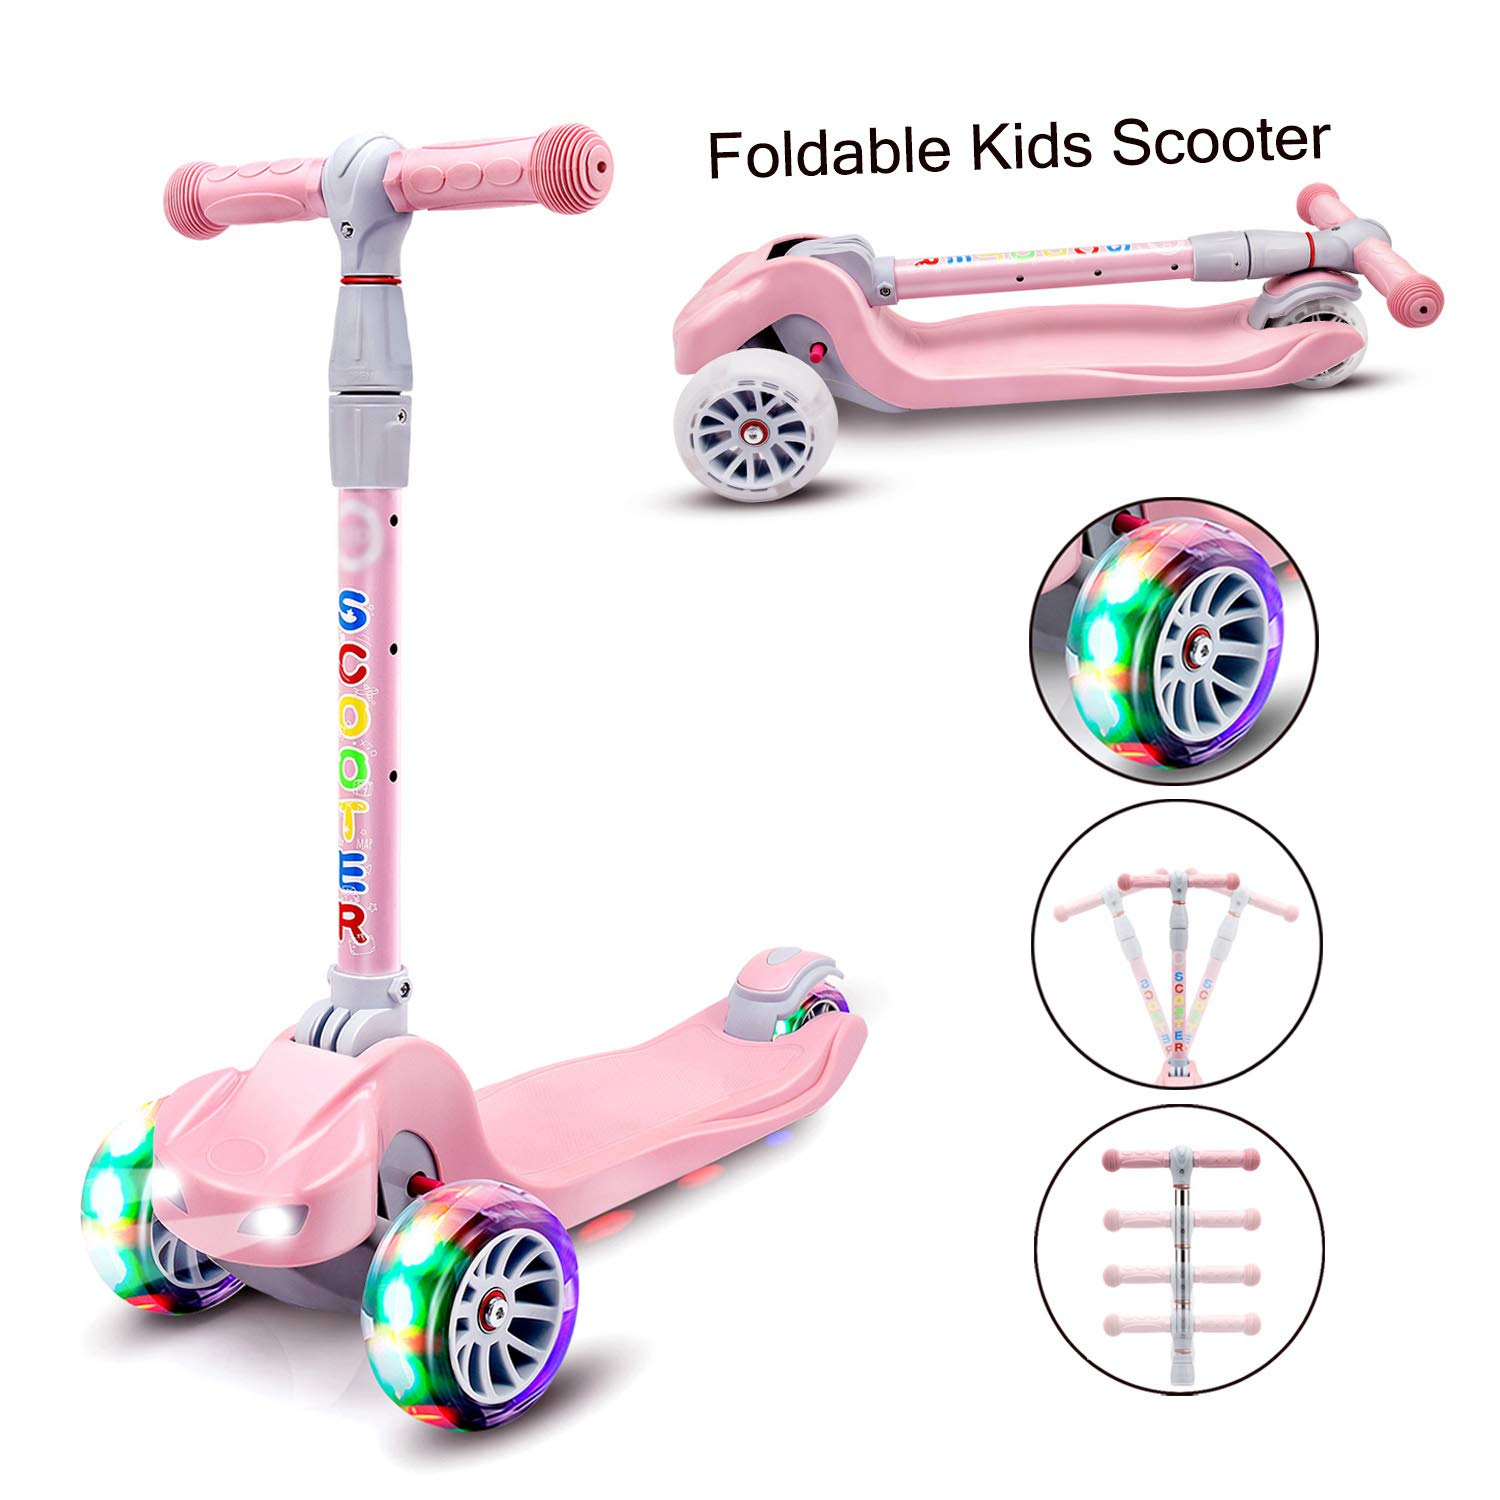 YX Kick Scooter for Kids 3 Wheel Toddlers Scooter 4 Adjustable Height Lean to Steer with PU LED Flashing Wheels for Boys Girls from 3 to 14 Years Old (Pink)